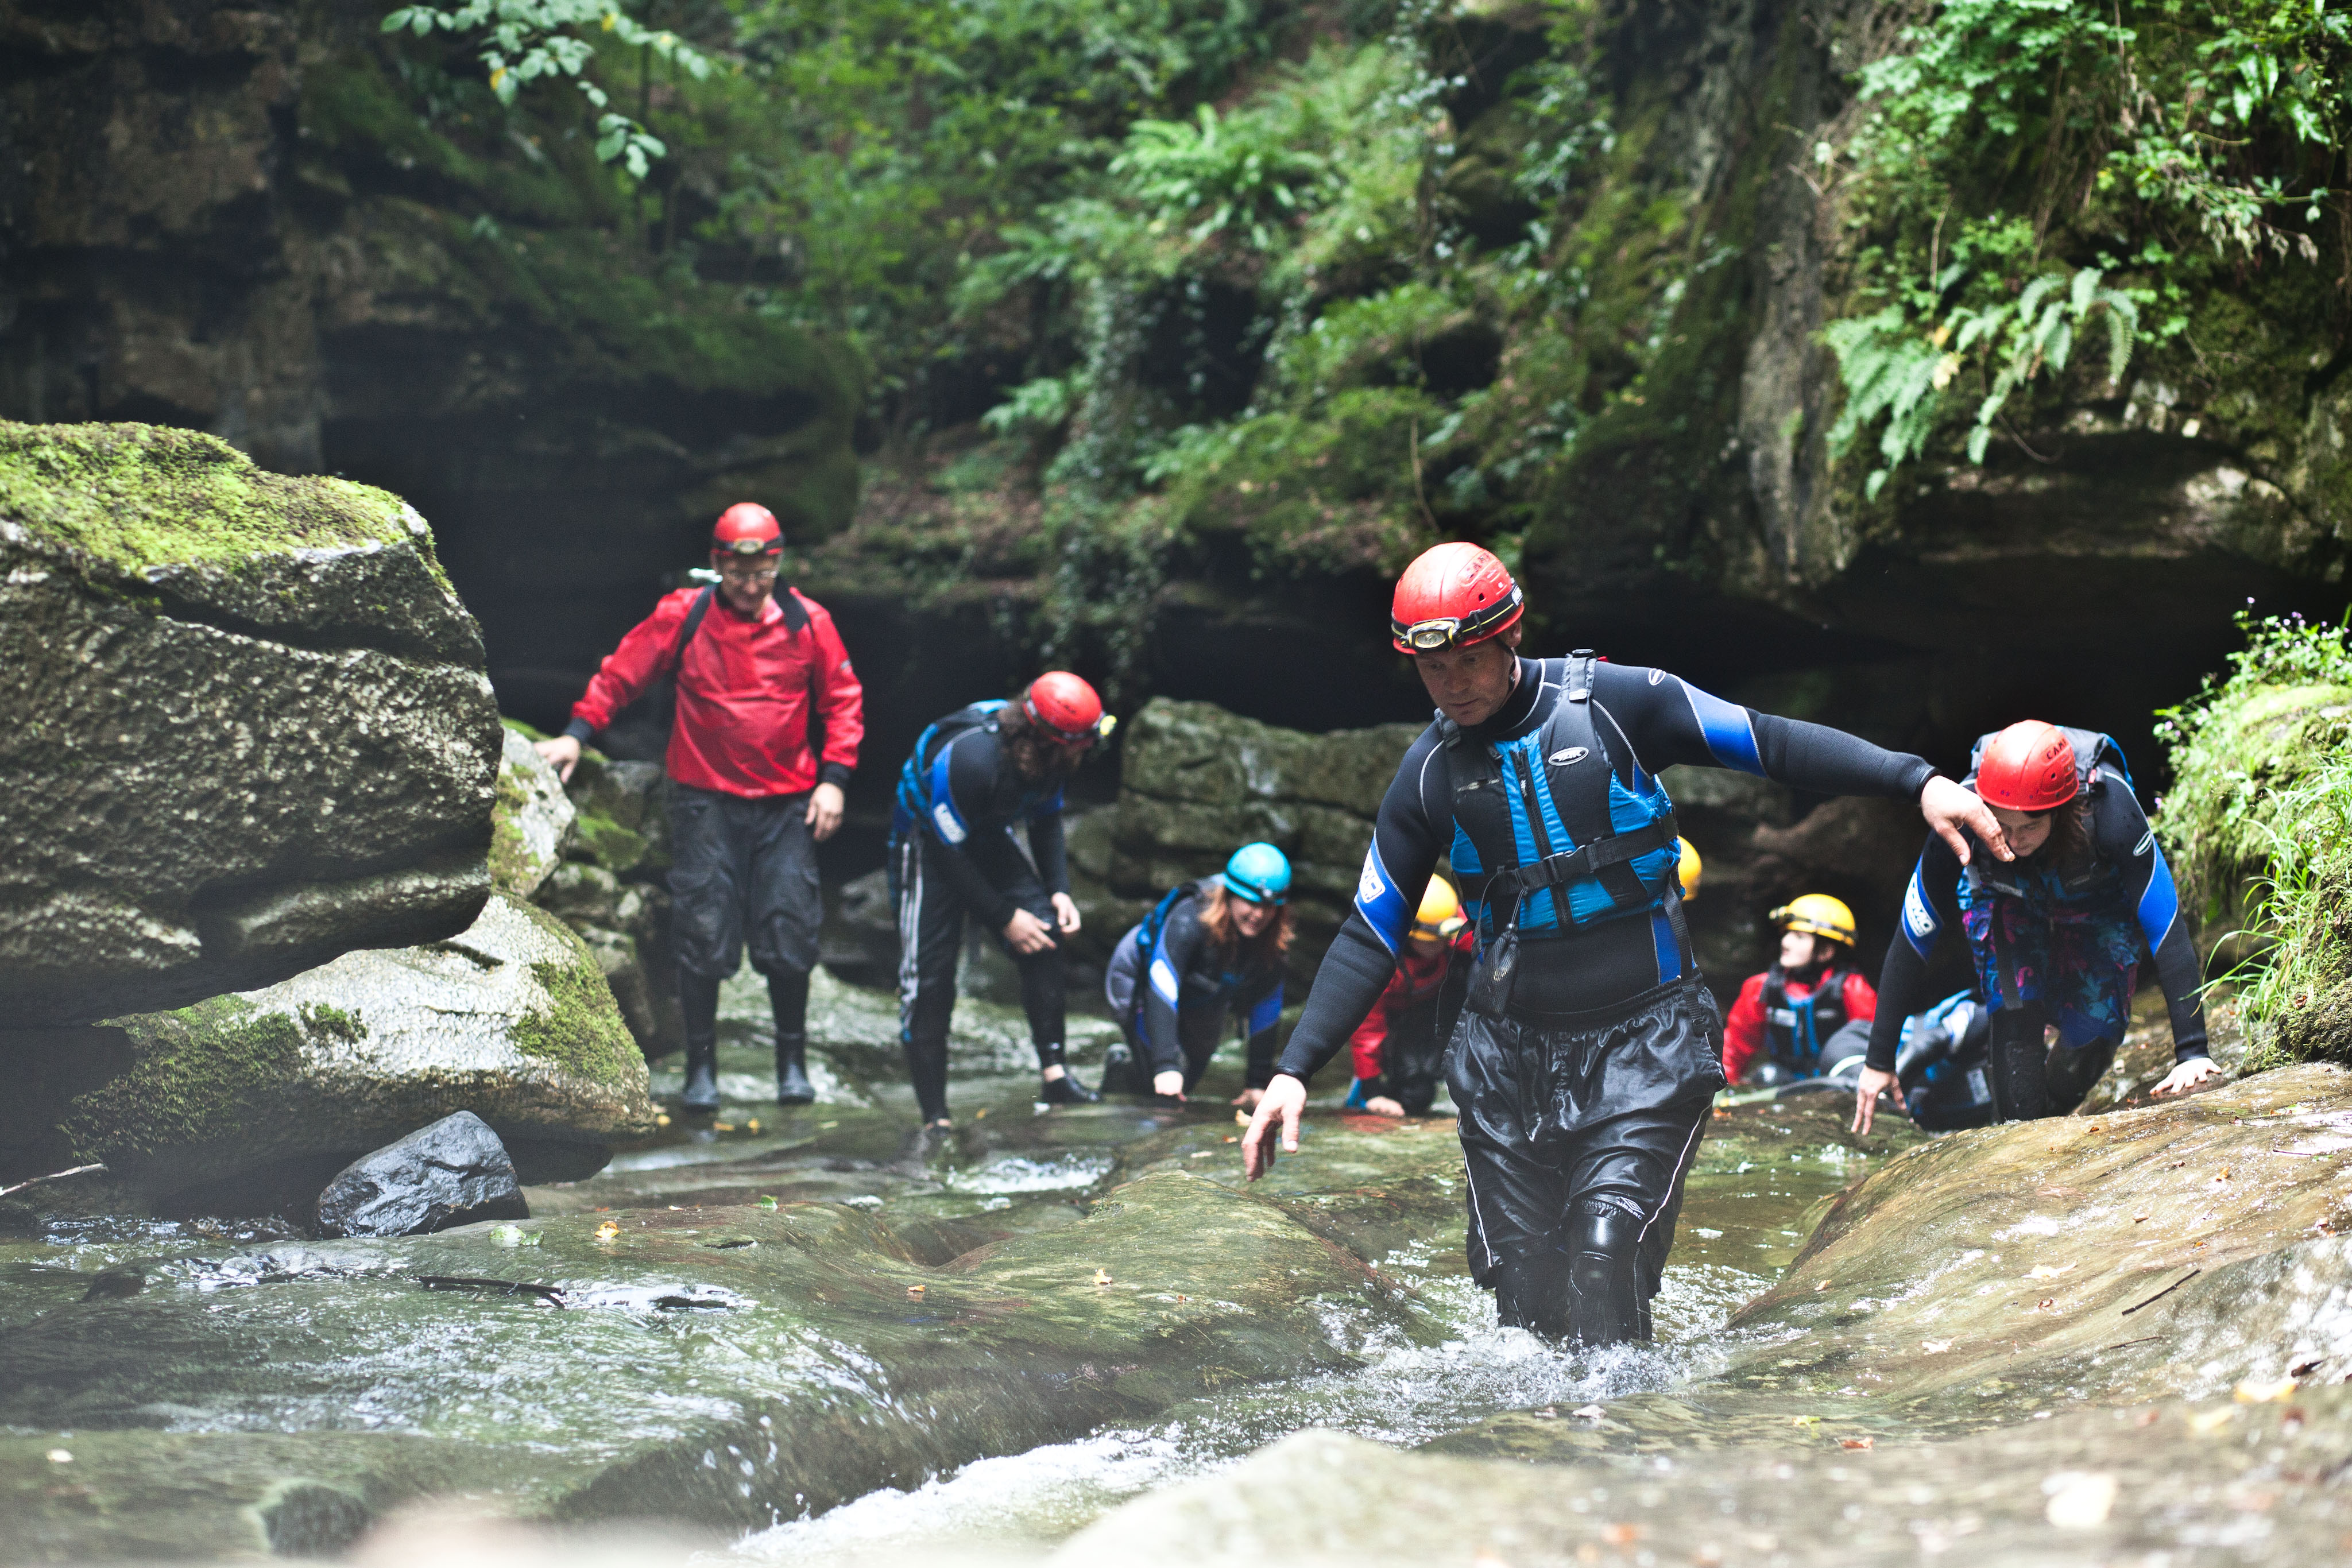 Group Gorge walking against the water current at How Stean Gorge, Yorkshire